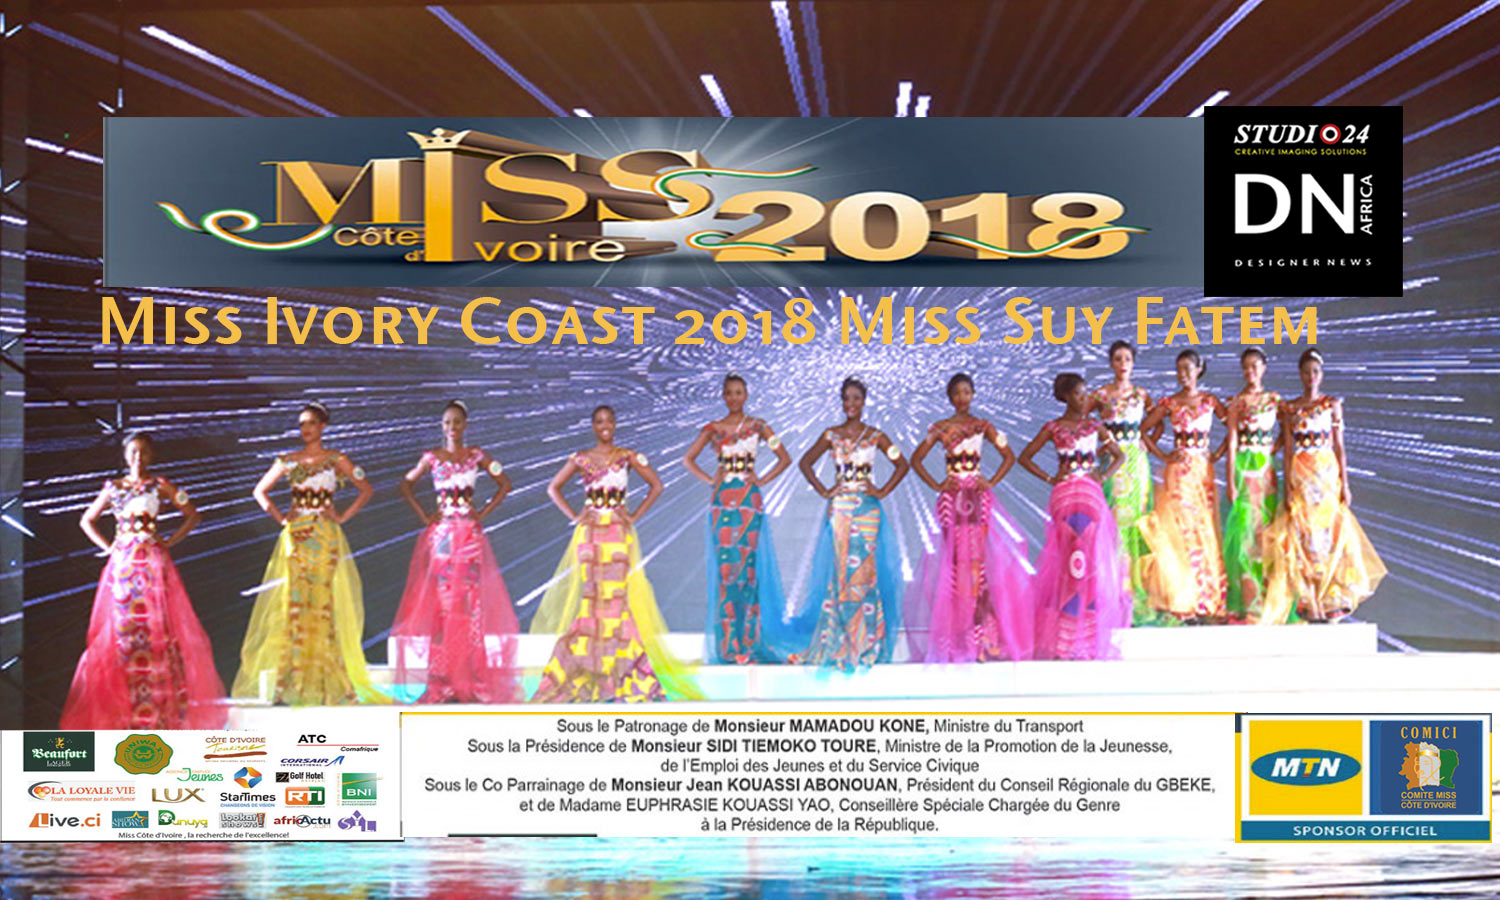 MISS COTE D'IVOIRE 2018 -AFRICAN FASHION STYLE MAGAZINE -MISS IVORY COAST 2018 - MISS MARIE-DANIELLE SUY FATEM - DN AFRICA - STUDIO 24 NIGERIA